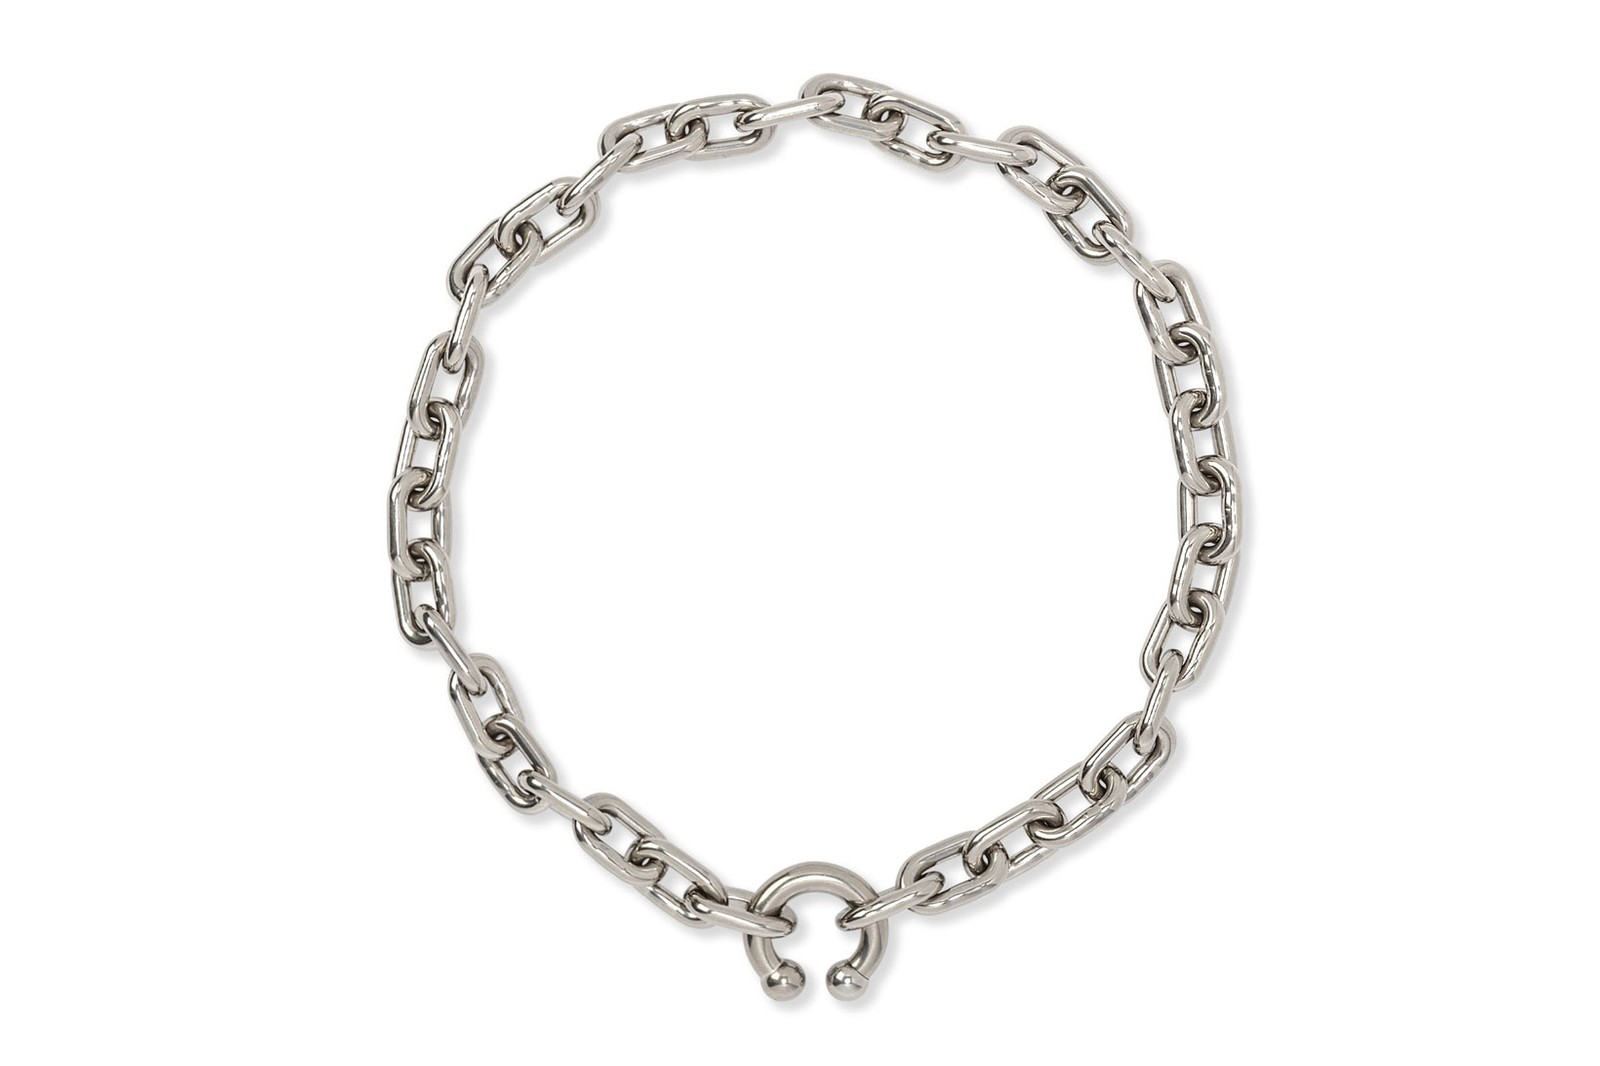 best chain necklaces chokers gold silver bold oversized chunky jewelry accessories numbering